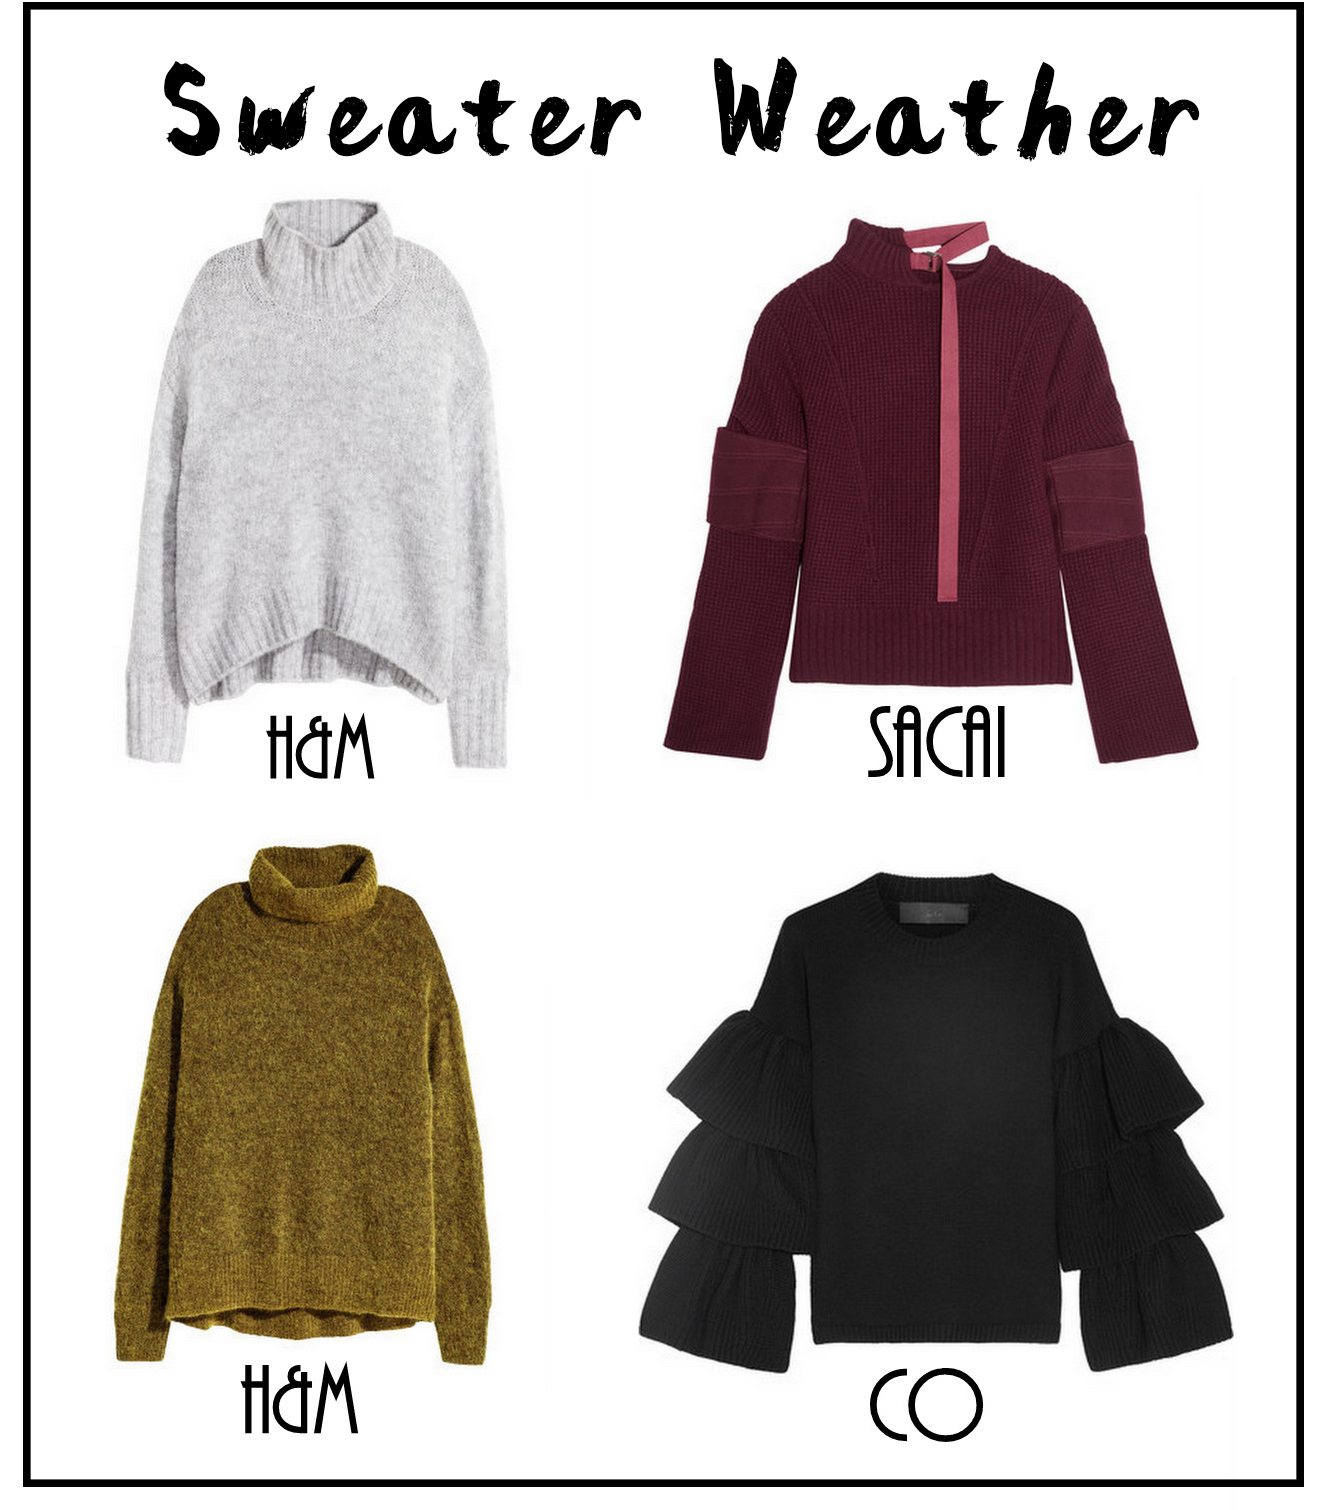 Sweater Weather + Trendy Sweater Clothes for fall and winter 2016/2017 | The Fashion Folks